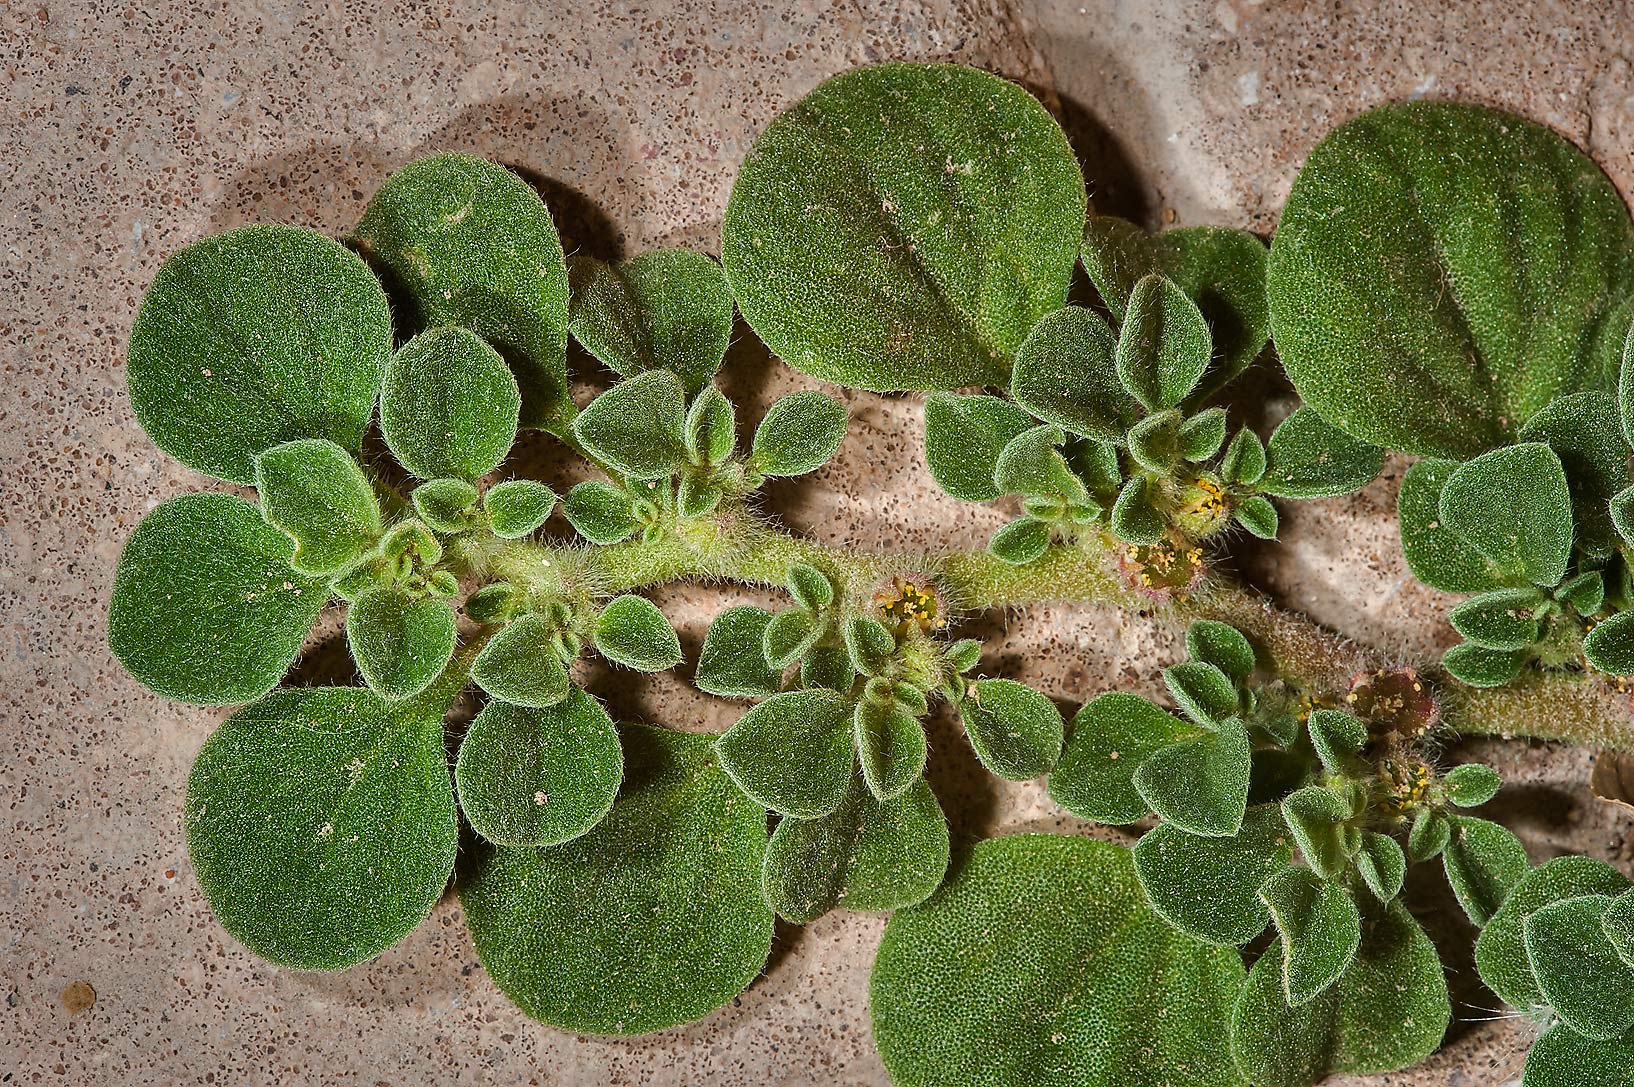 Purslane-leaved aizoon (Aizoon canariense) on...St. near West Bay. Doha, Qatar